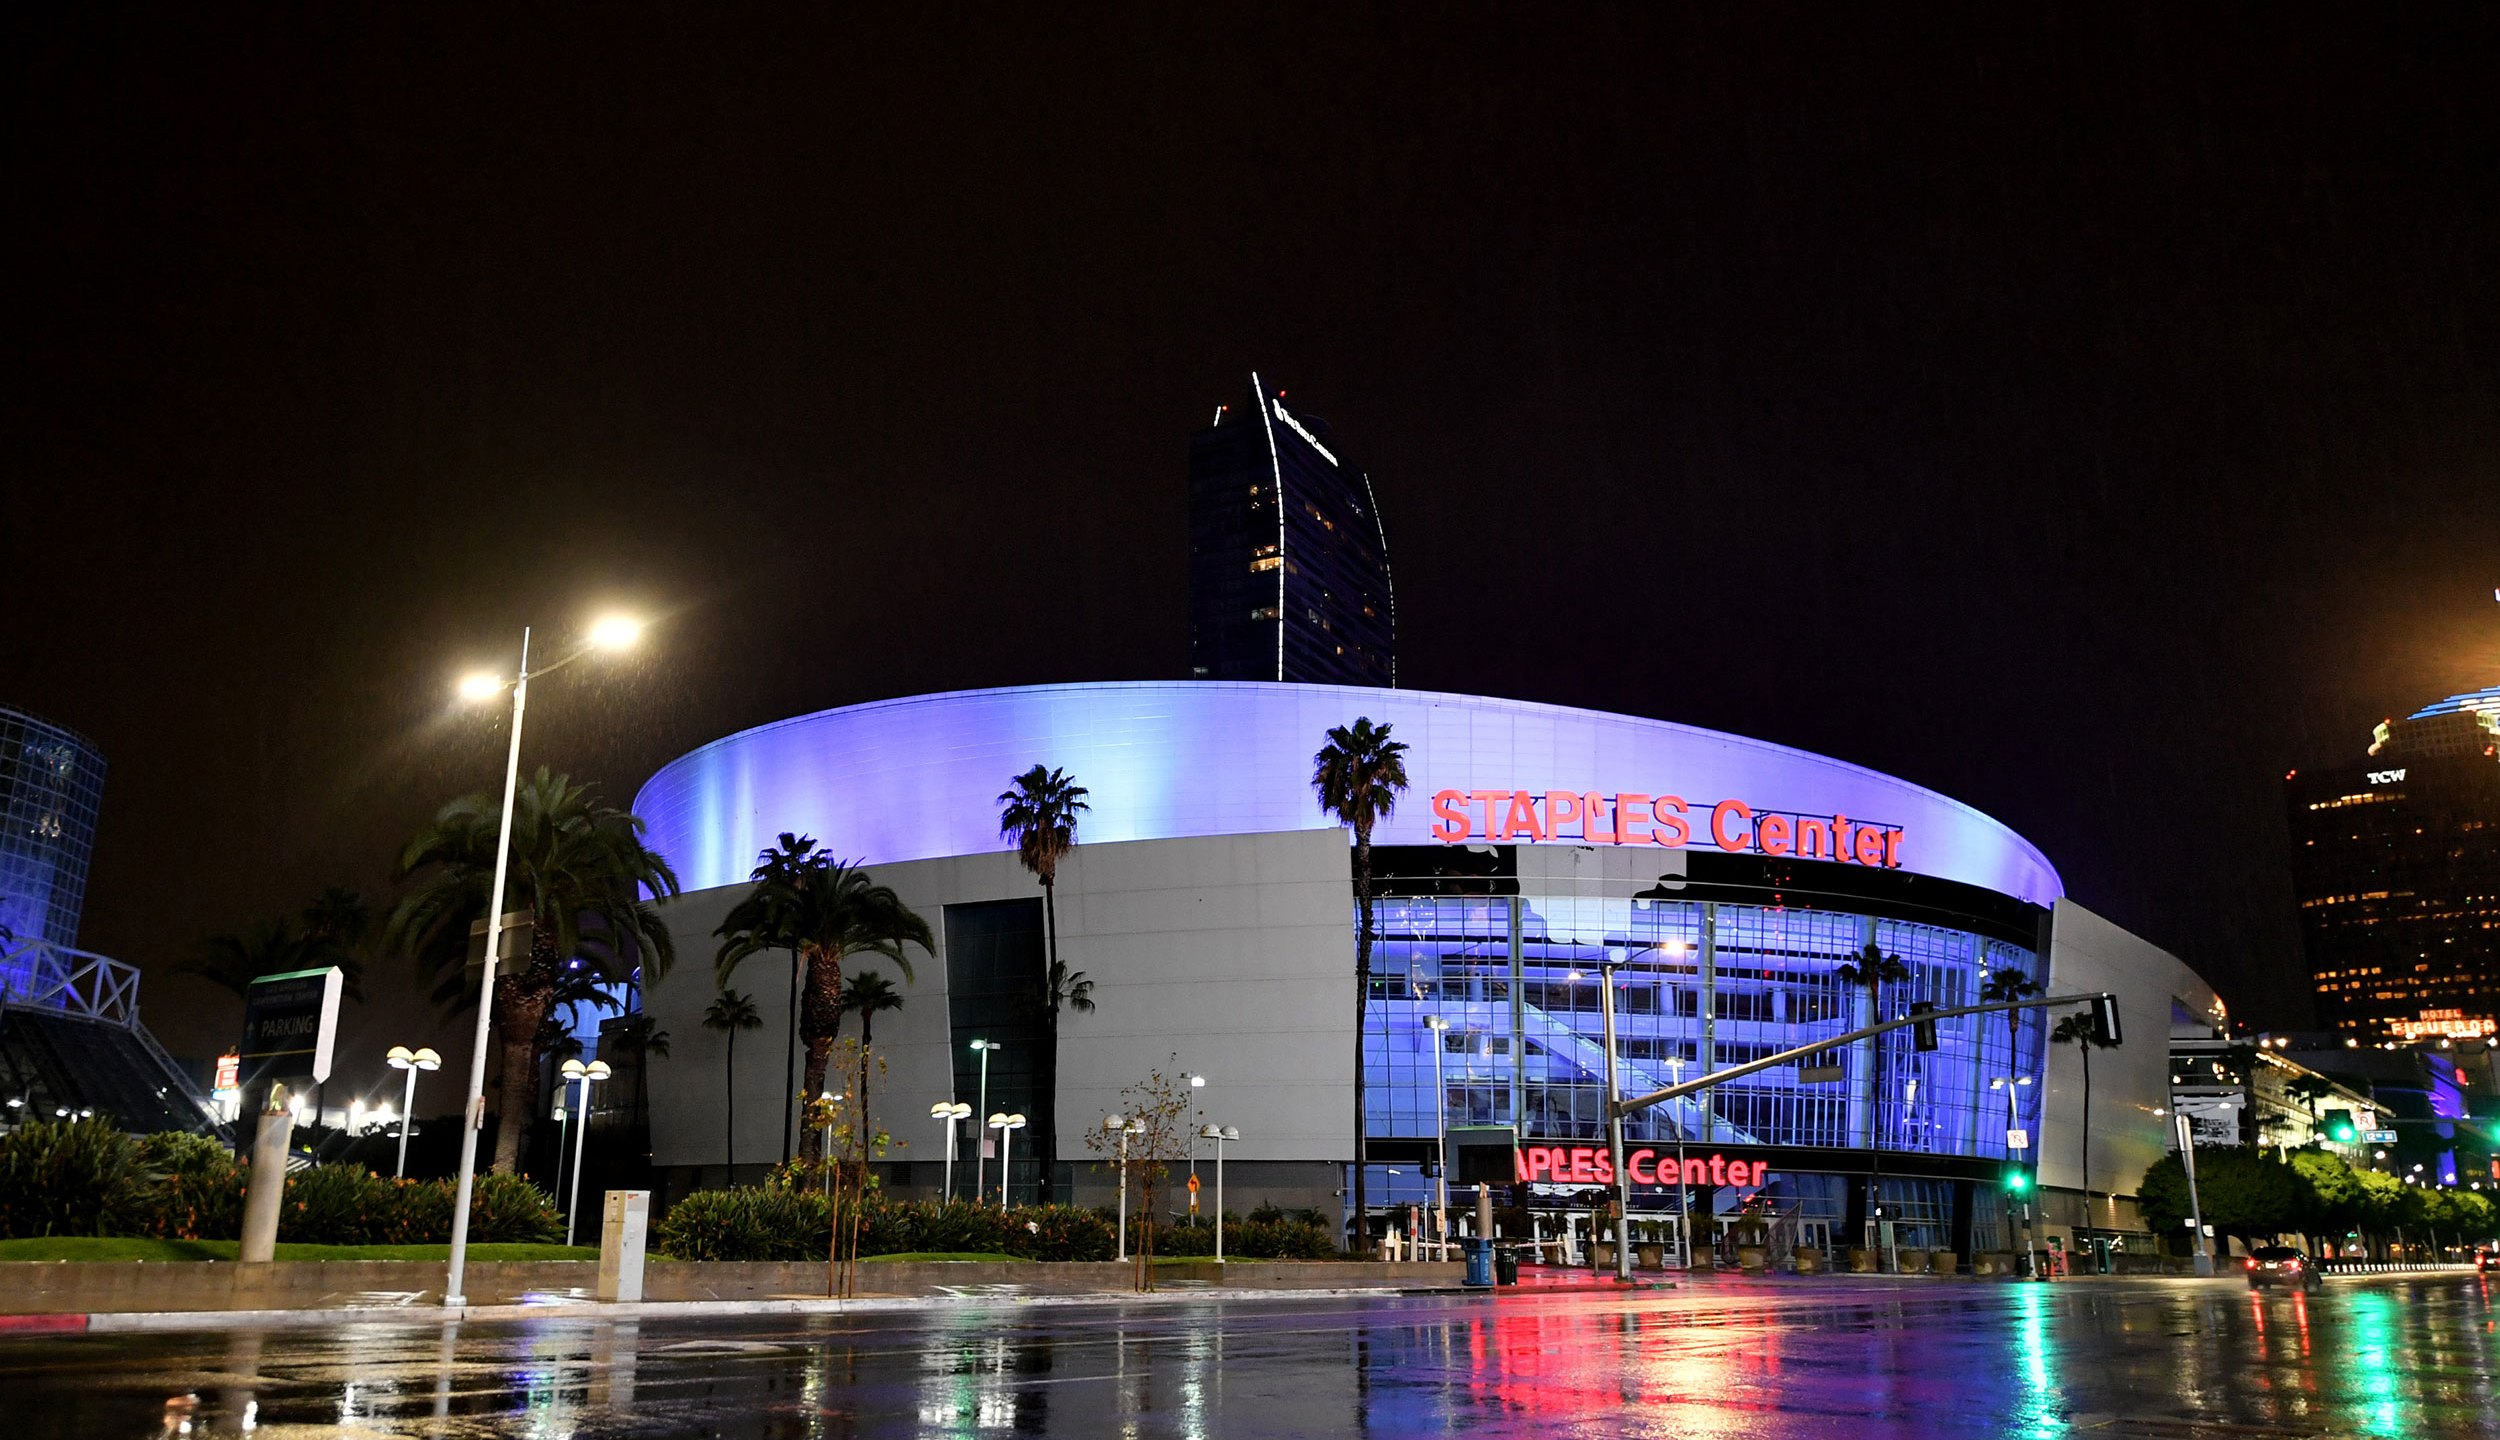 Staples Center is illuminated in blue lights during the coronavirus pandemic on April 09, 2020. (Amy Sussman/Getty Images)